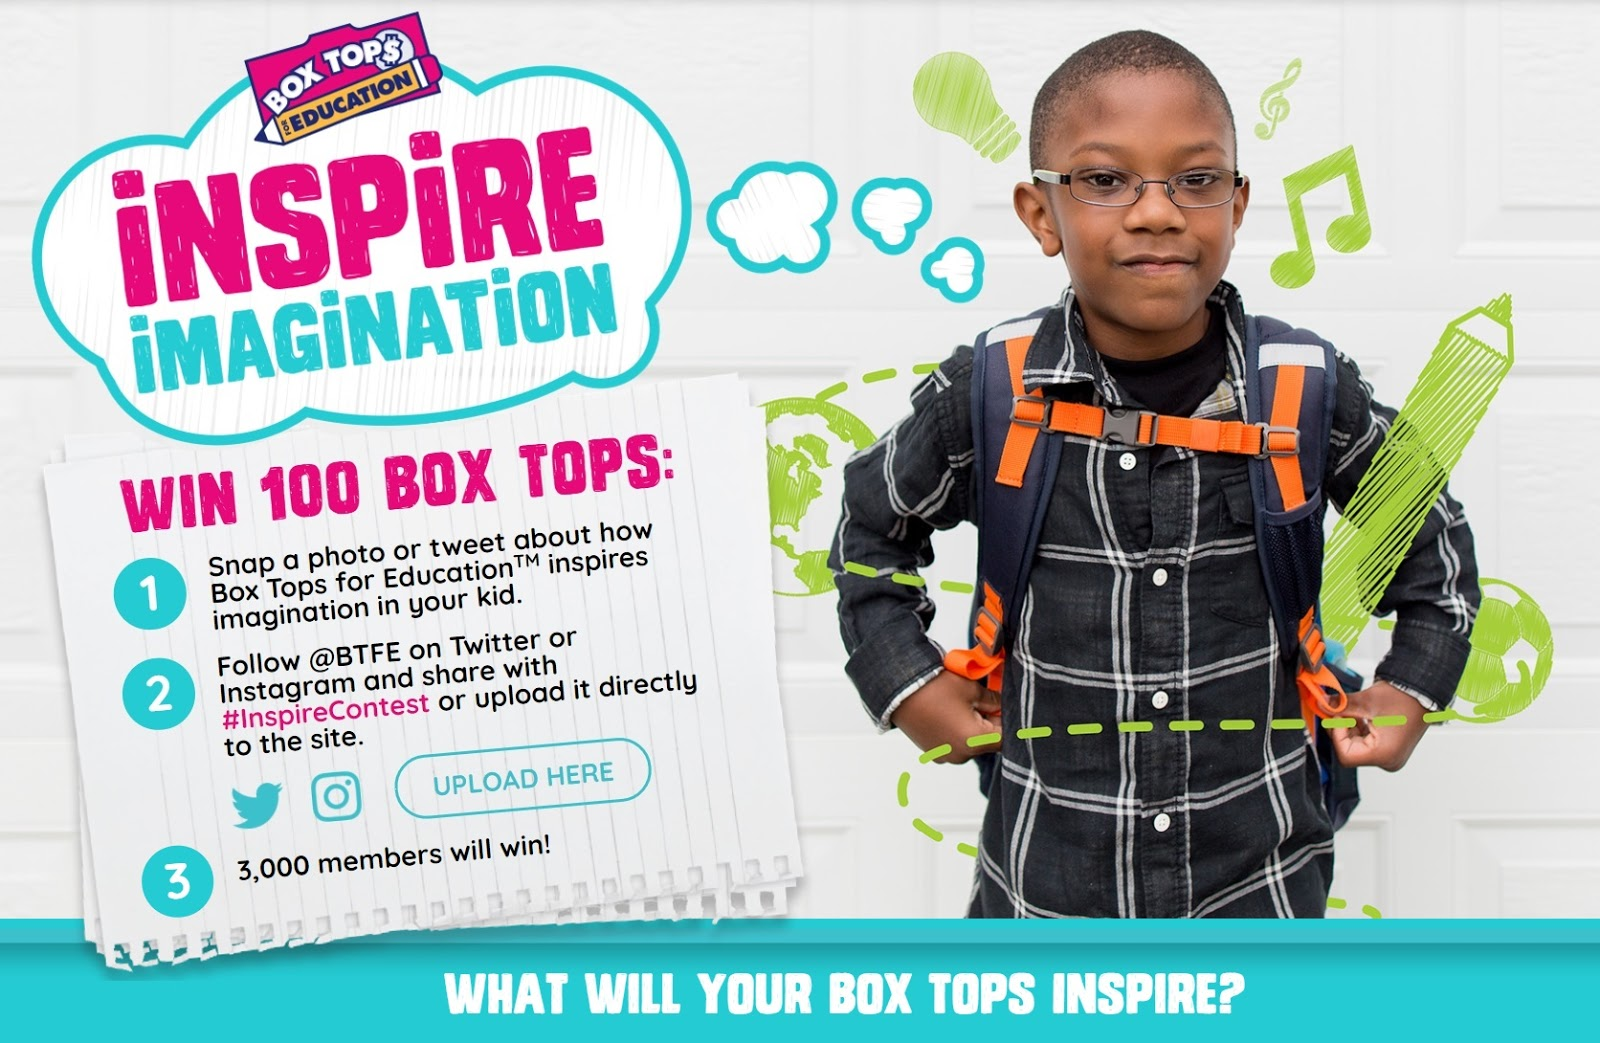 Inspire Imagination Box Tops program